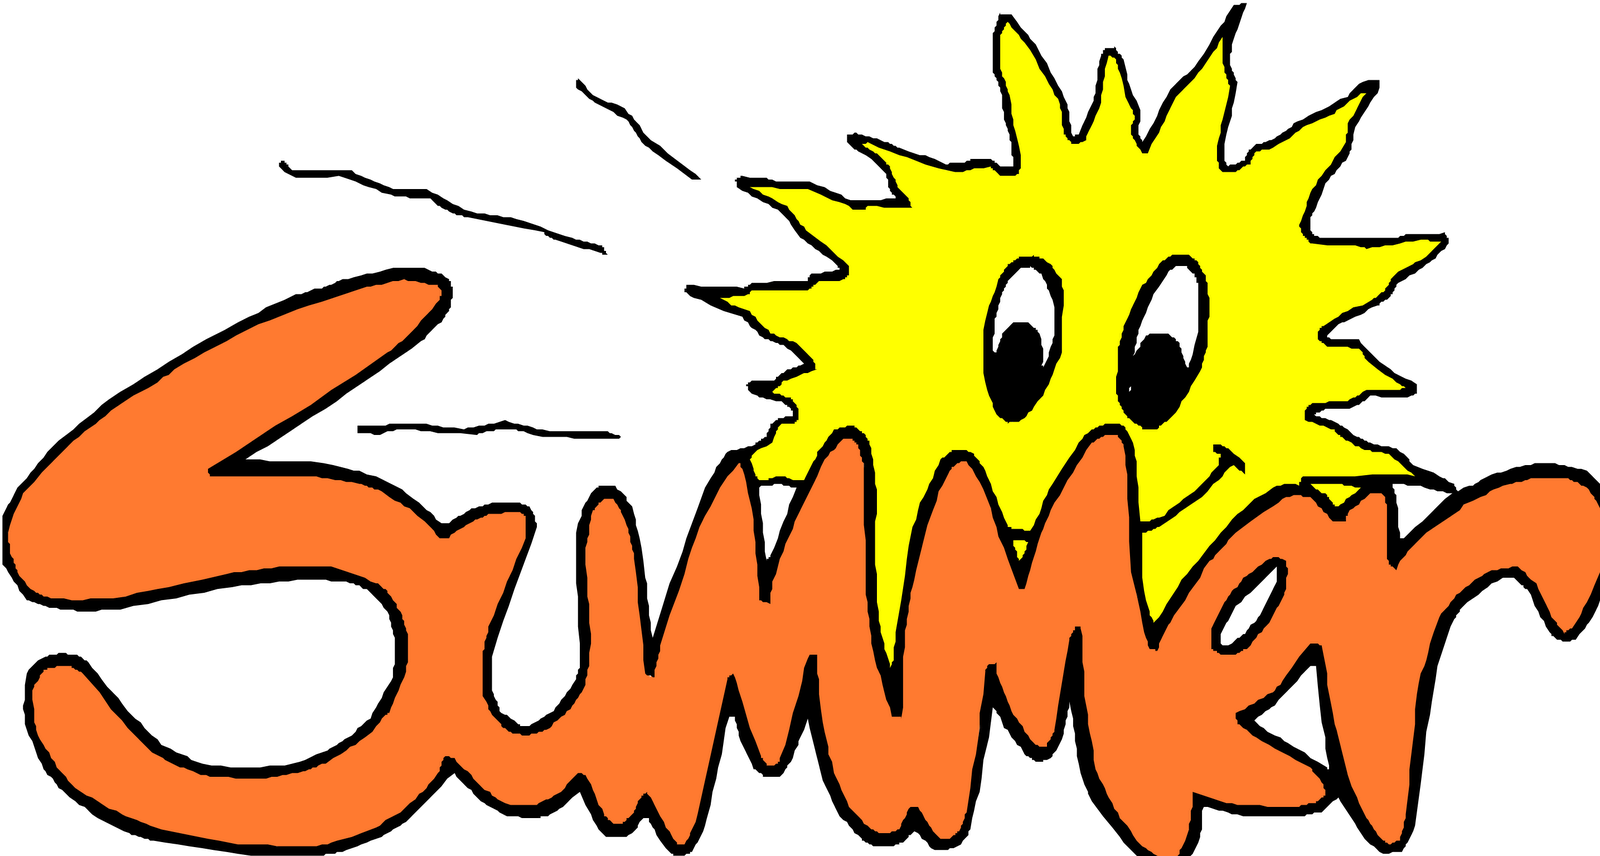 End Of Summer Clip Art.